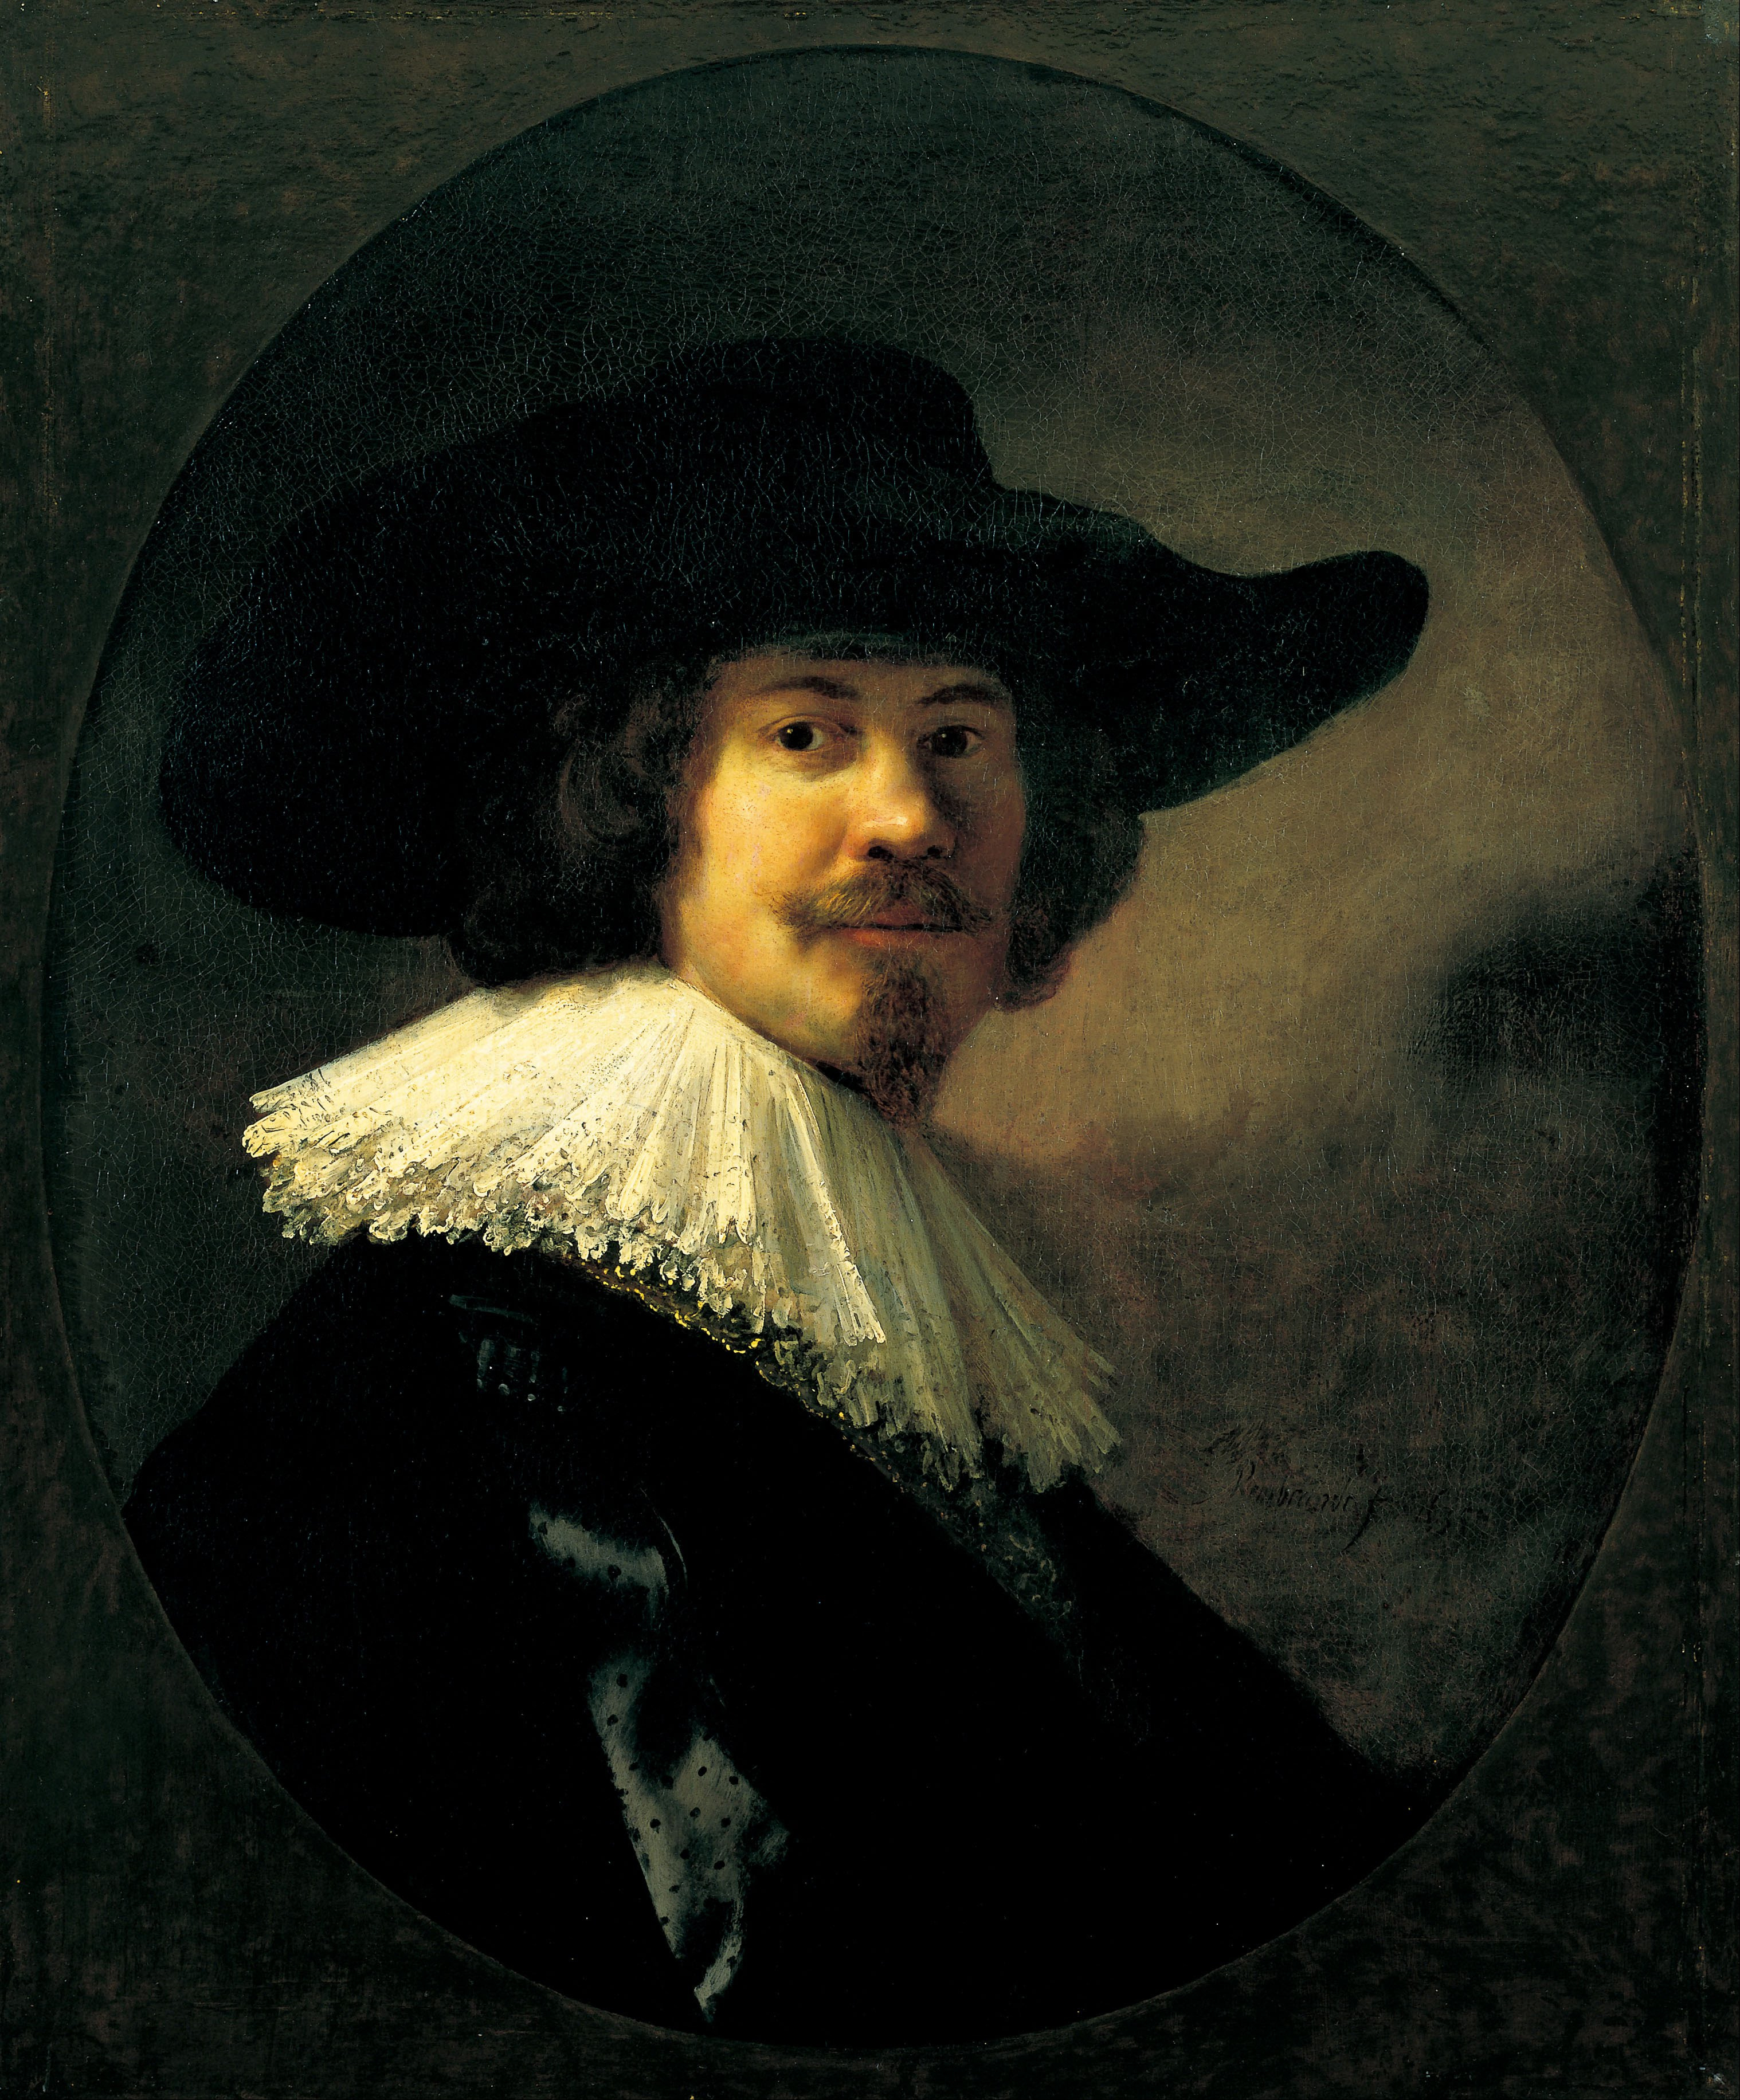 Rembrandt van Rijn - Portrait of a Man in a Broad-Brimmed Hat - Google Art Project.jpg